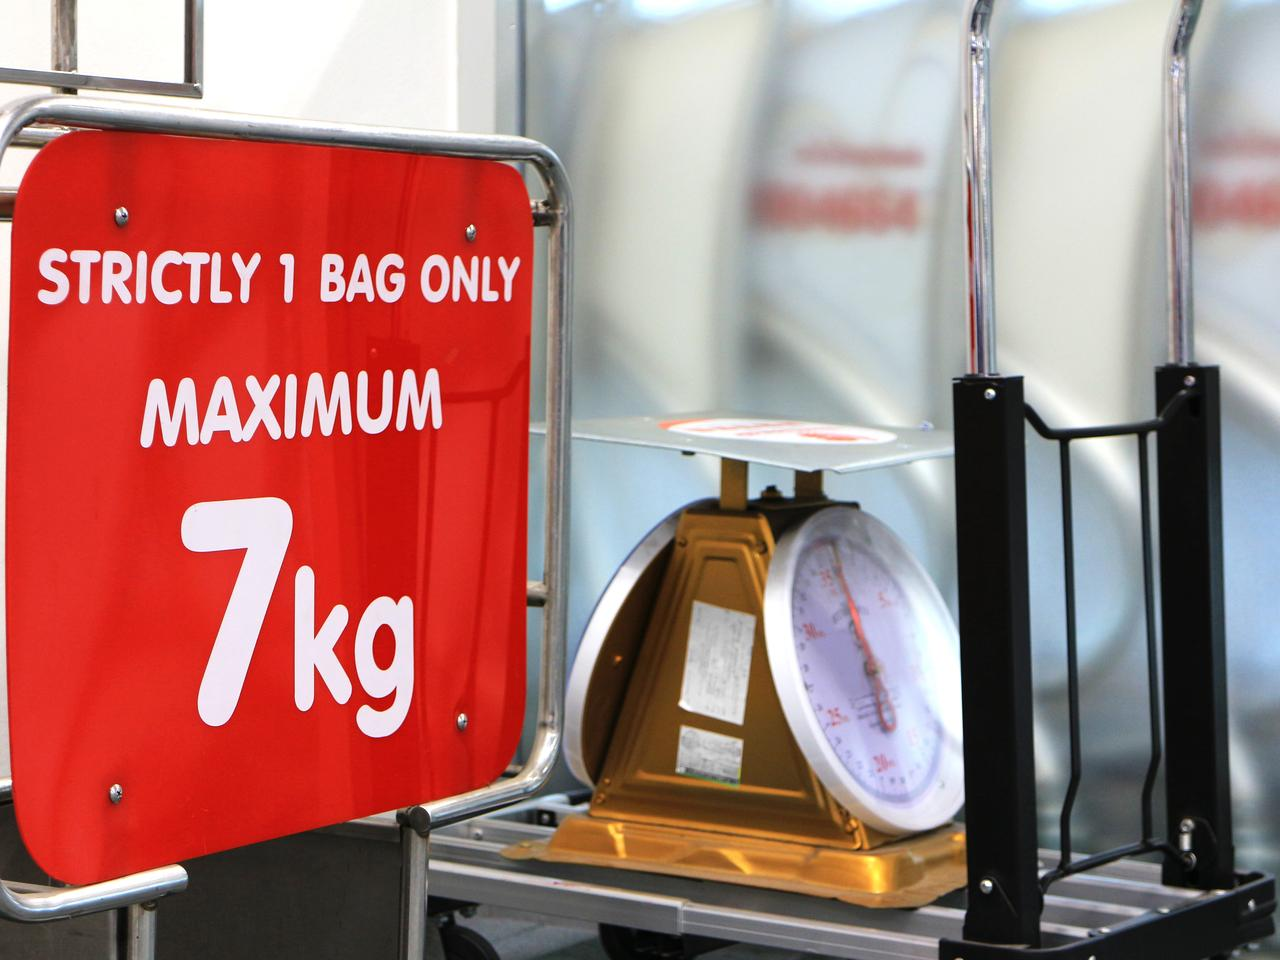 Baggage Weight Limit Sign Board